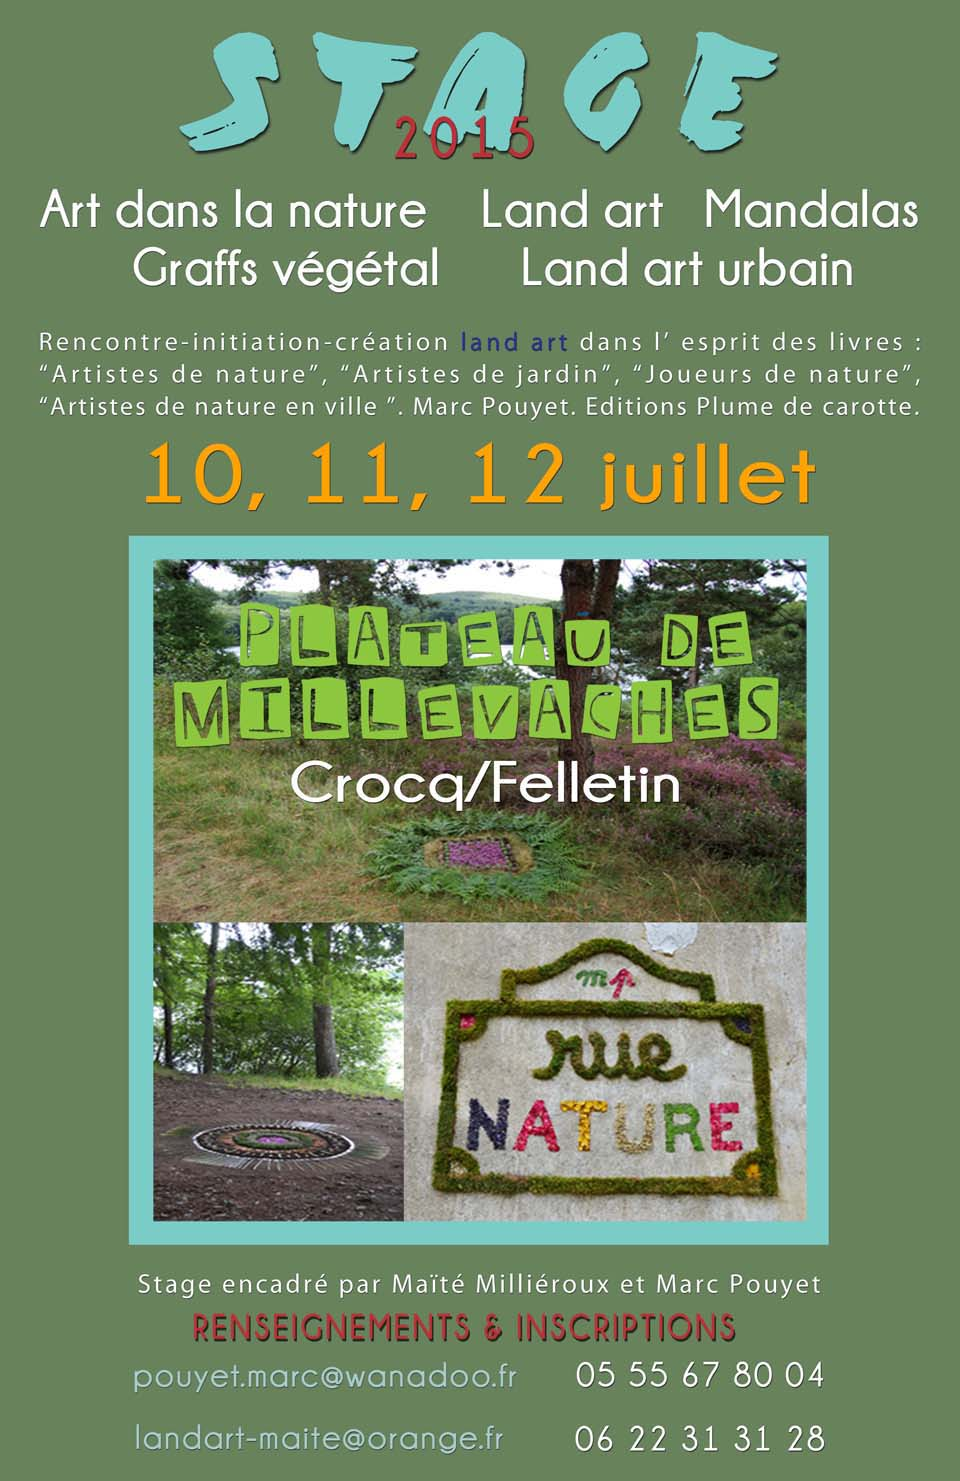 FLYER STAGES CREUSE 21015